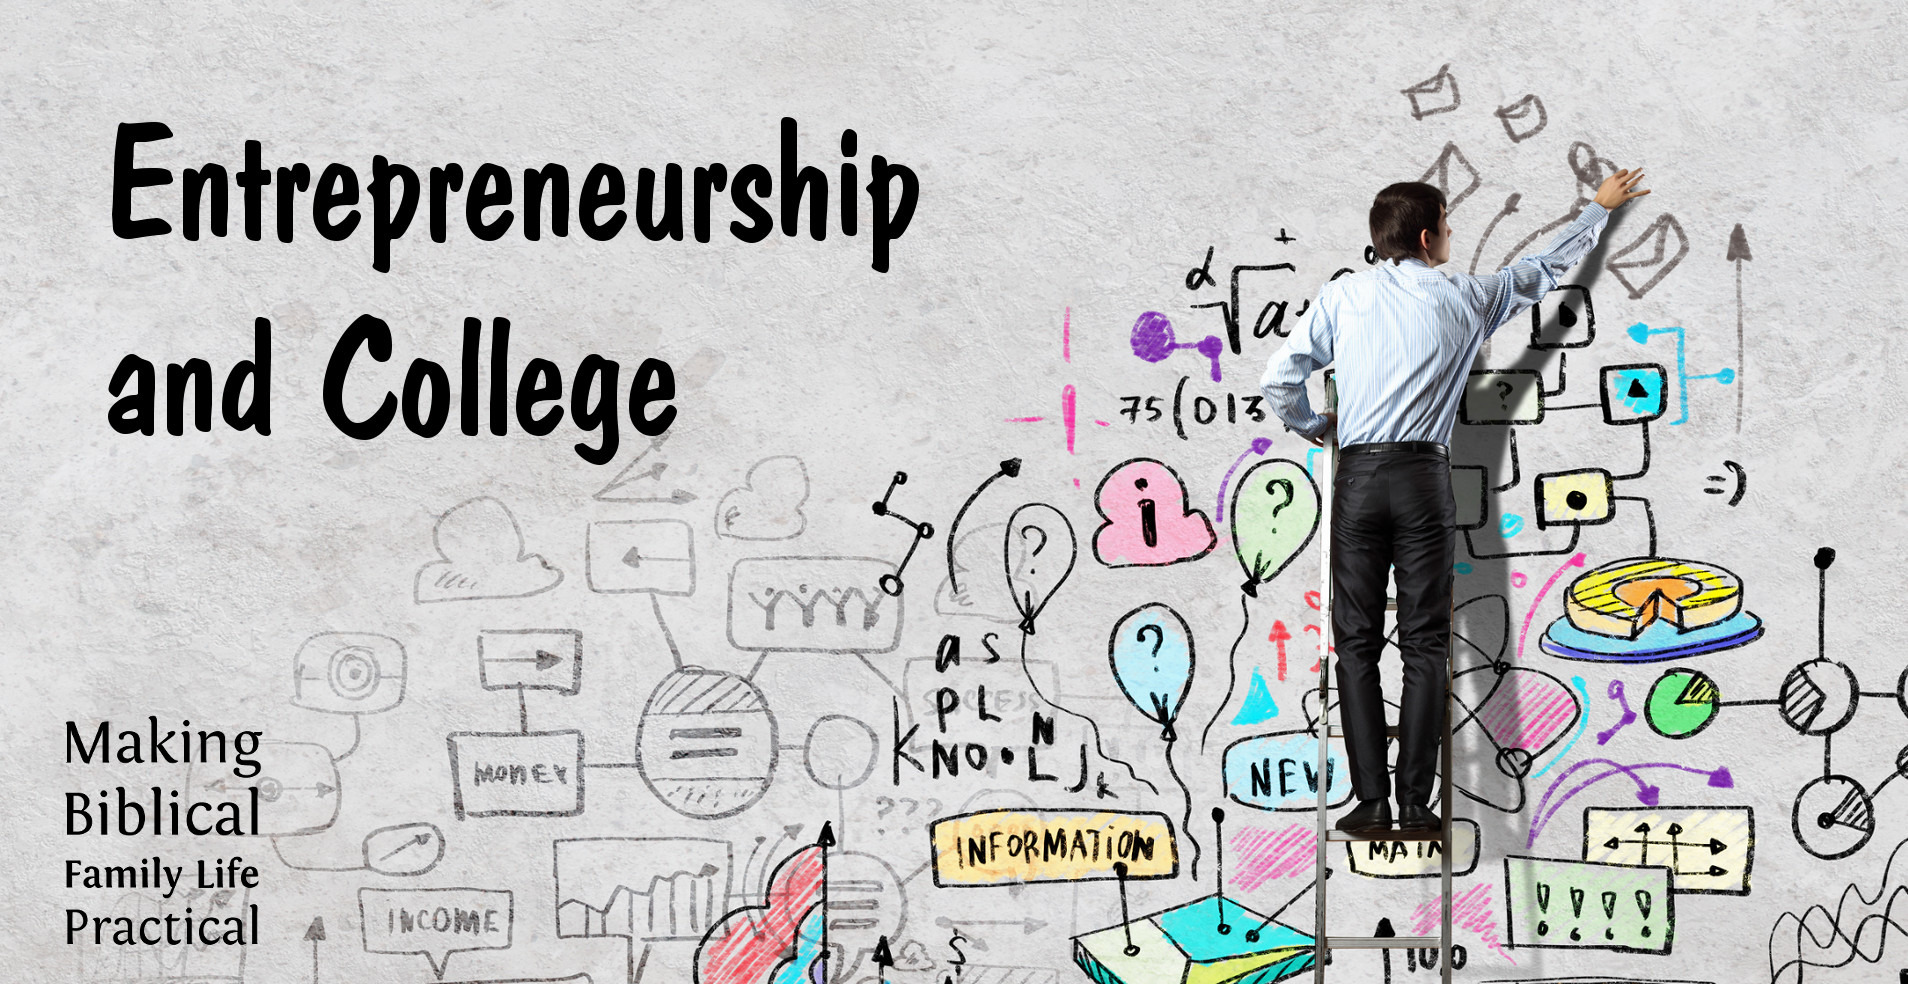 College can be useful for entrepreneurs too